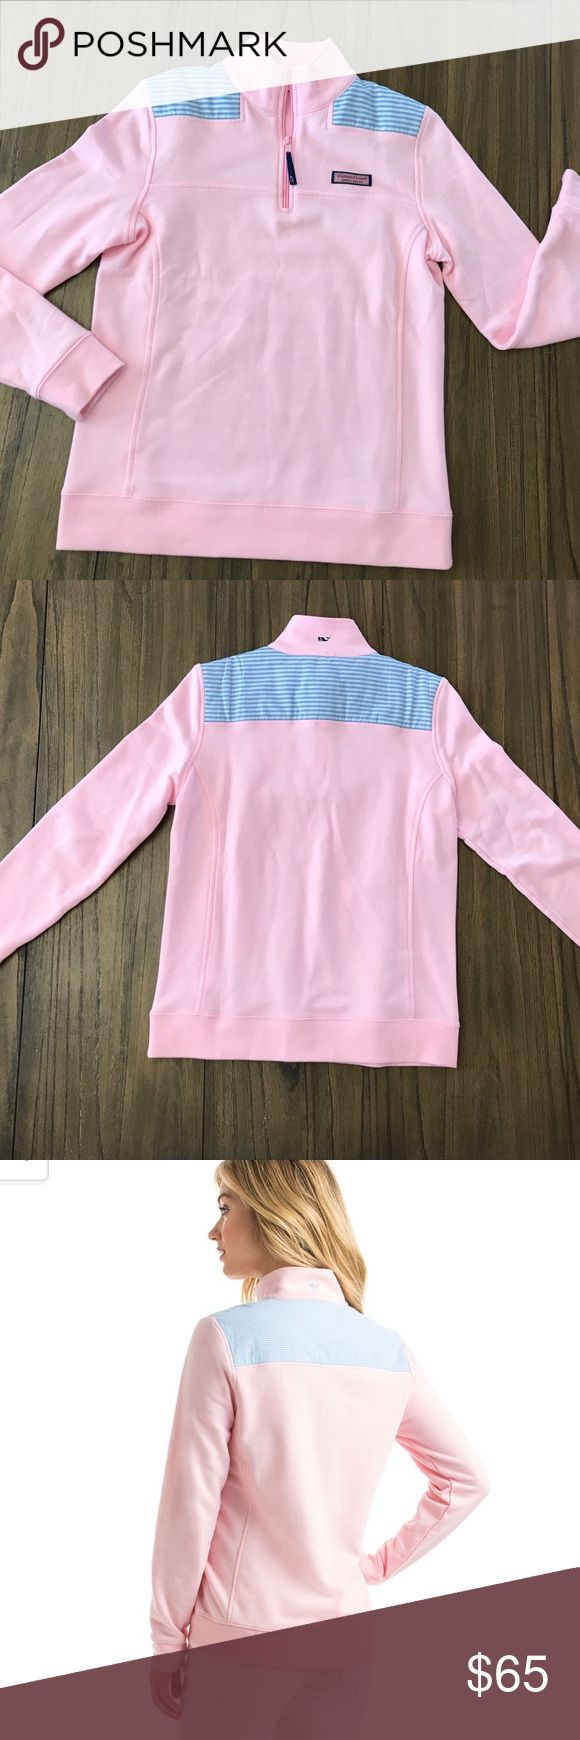 Vineyard Vines Oxford Stripe Pink Shep Shirt Gorgeous light pink Shep with blue and white Oxford stripes at shoulder. Women's XS Vineyard Vines Tops